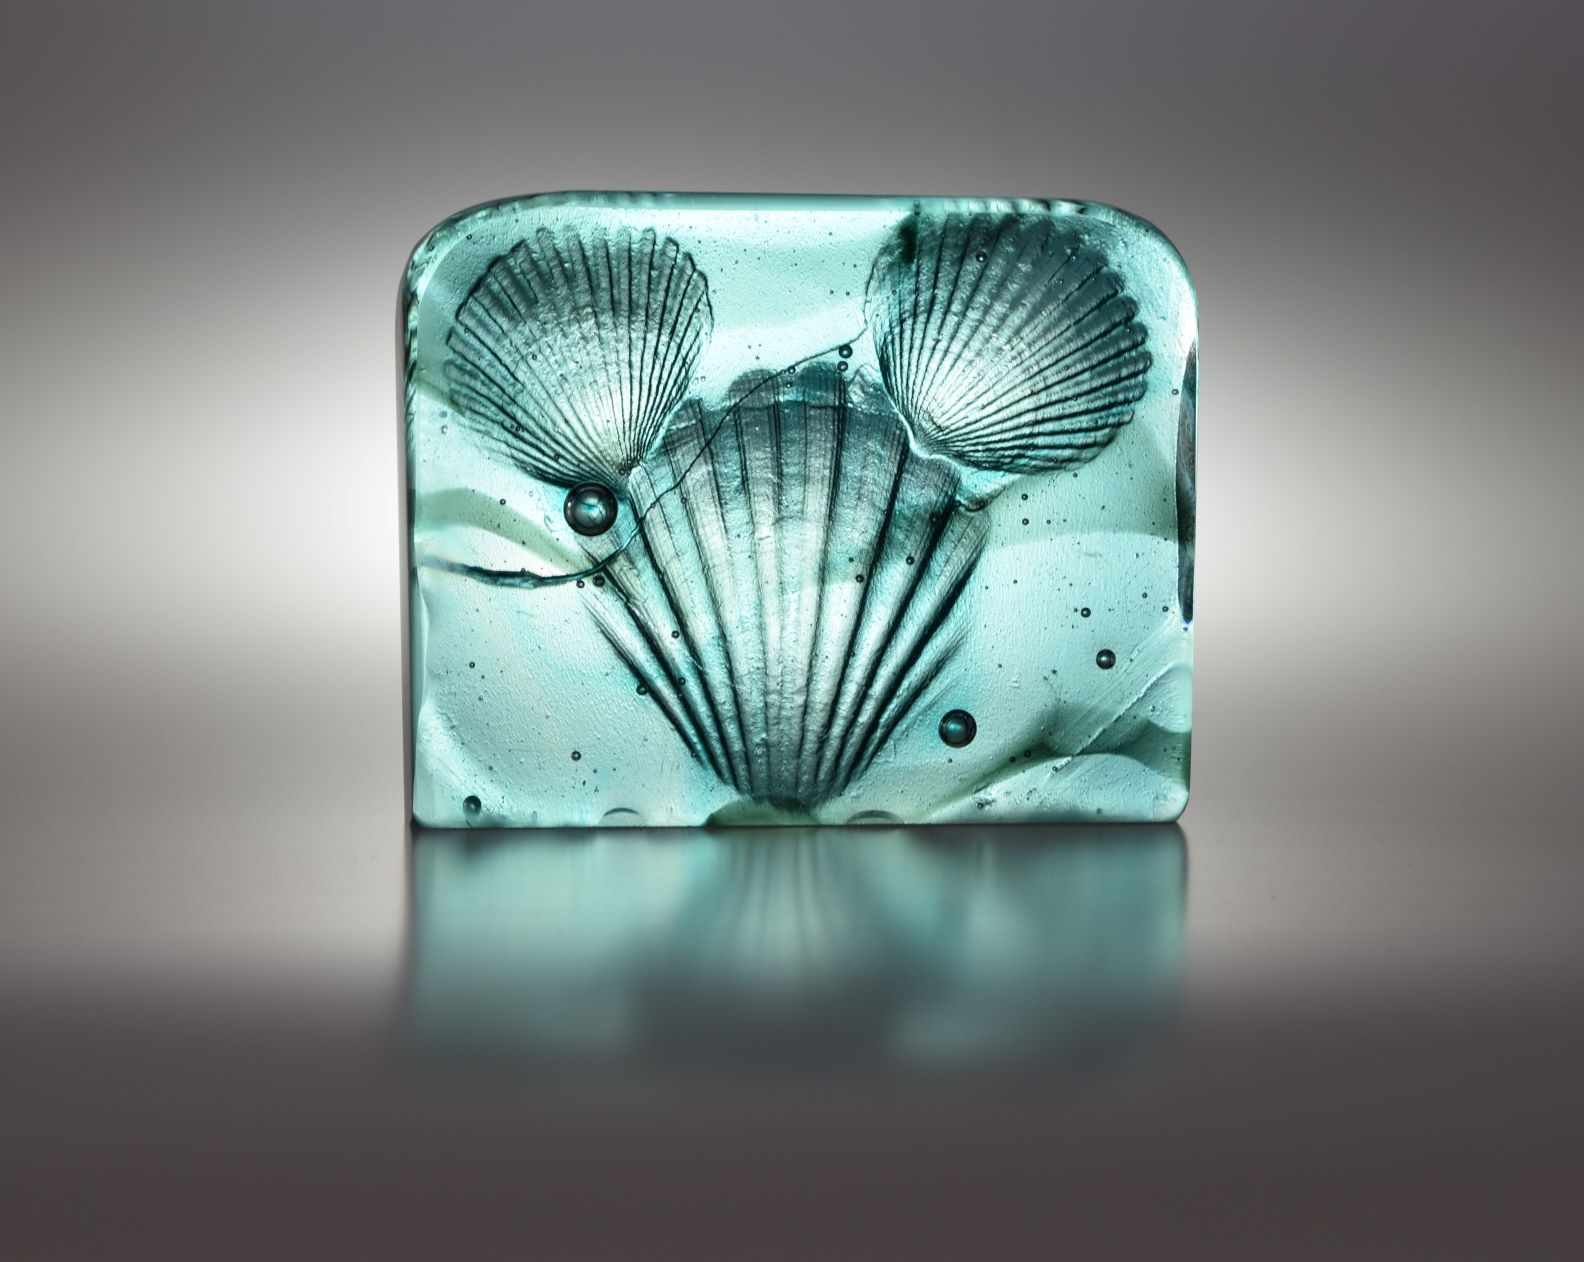 cast glass sculpture of shells, pearls and ocean waves